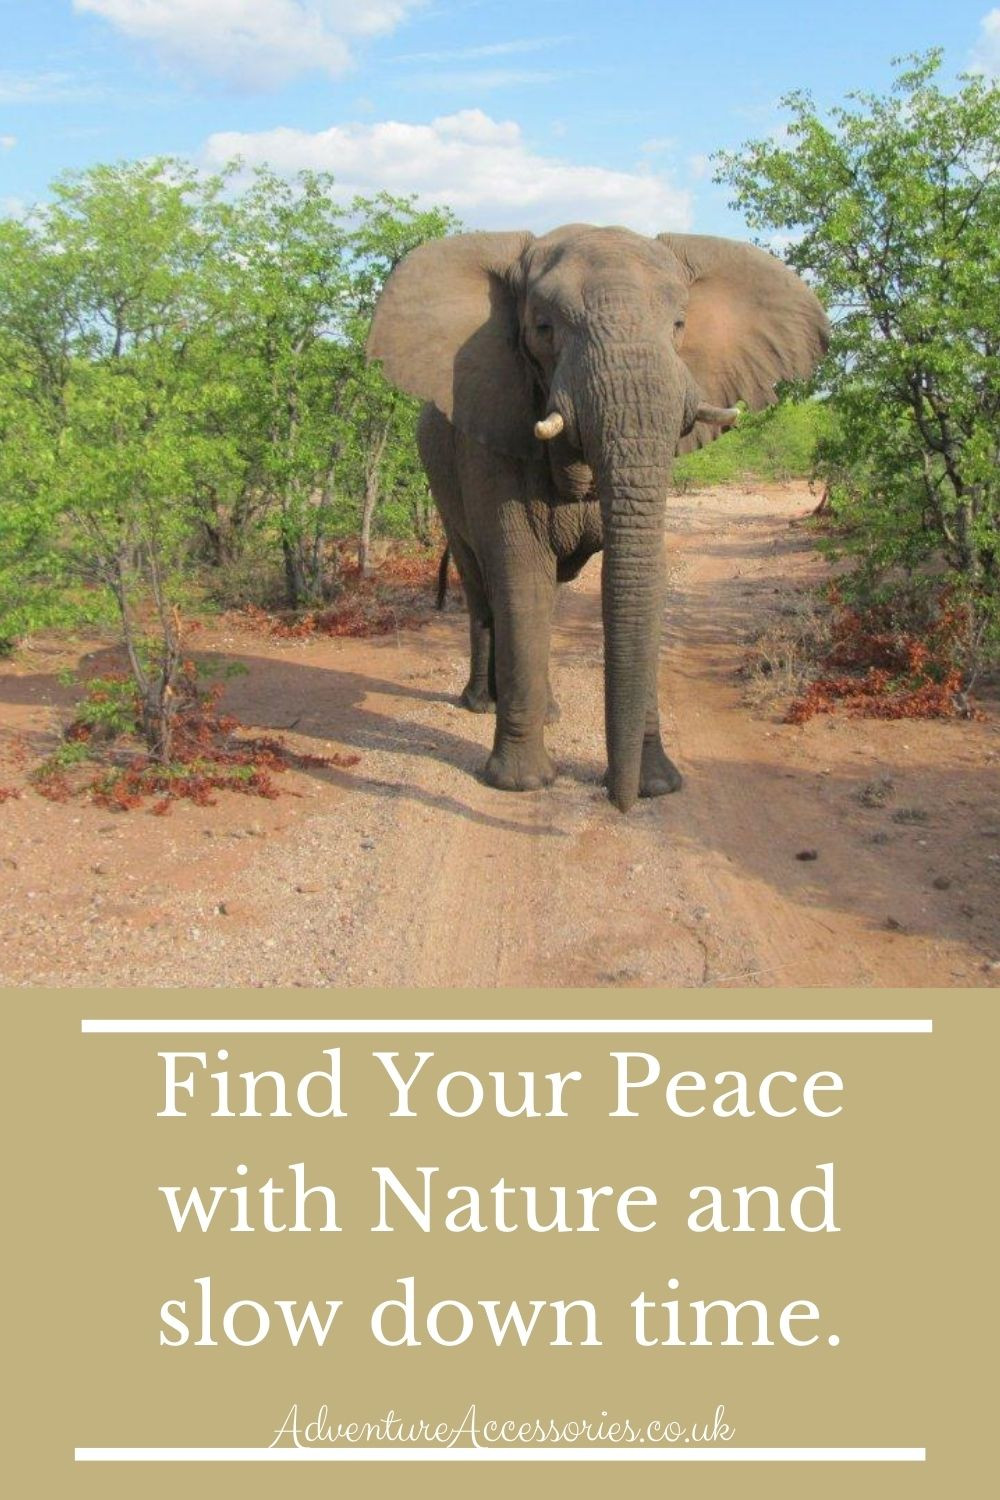 Nature: Slow down time, find your peace. Adventure Accessories